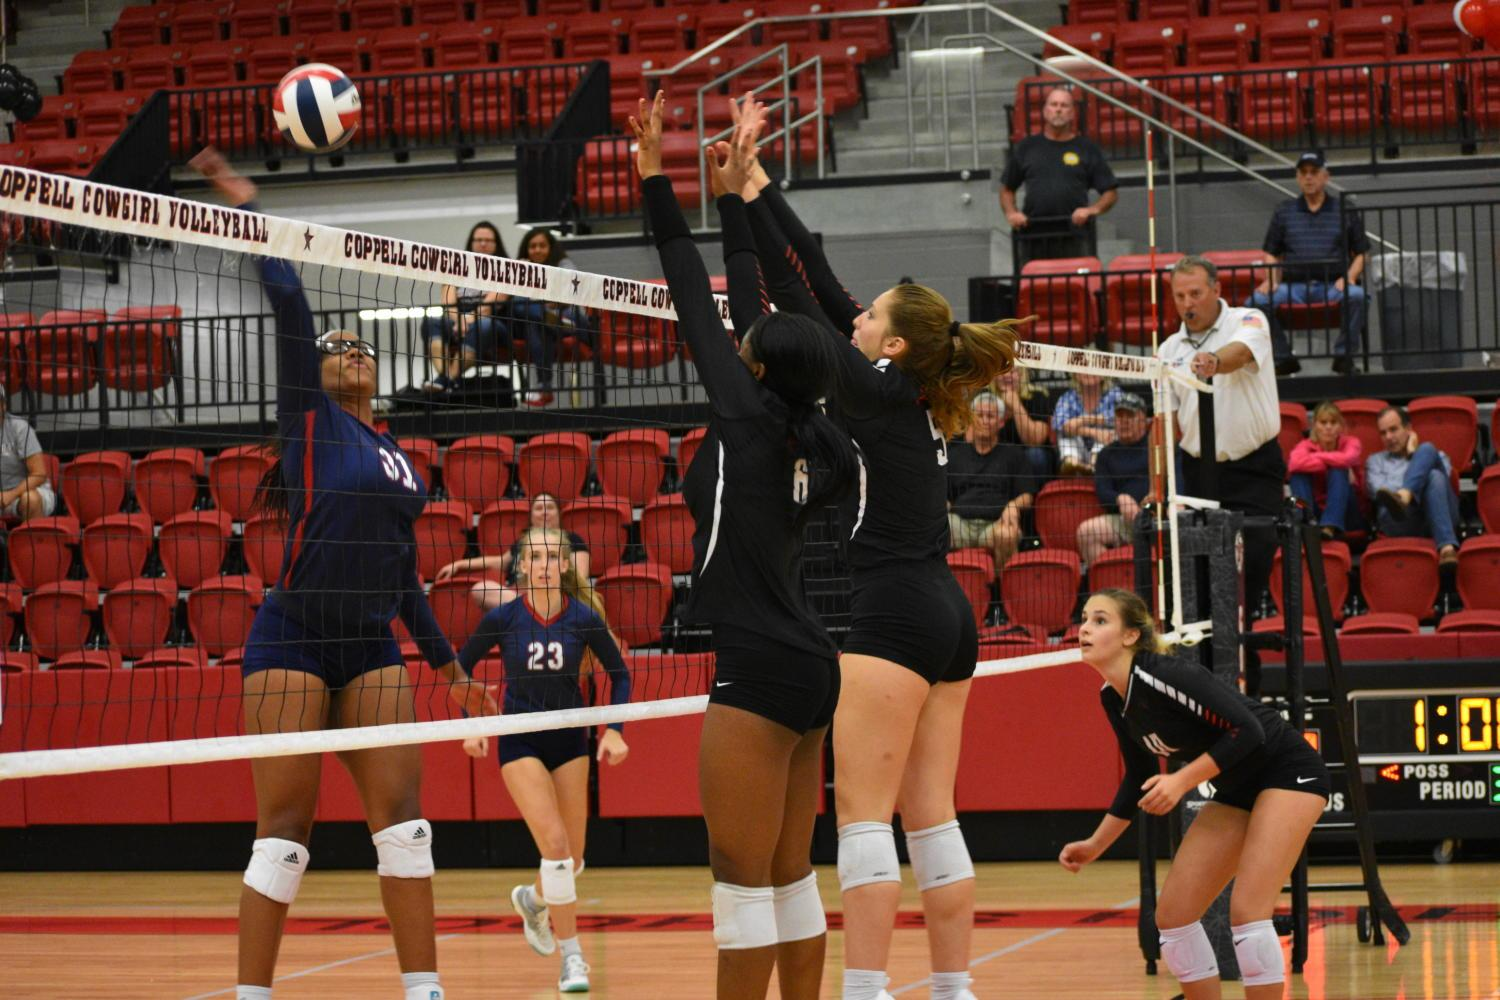 Coppell High School junior Amarachi Osuji and freshman Madison Gilliland jump to make a block during Friday night's game in the Arena. The Cowgirls played against the Allen Eagles and ended the match losing straight sets (27-29, 12-25, 20-25) against the Lady Eagles.